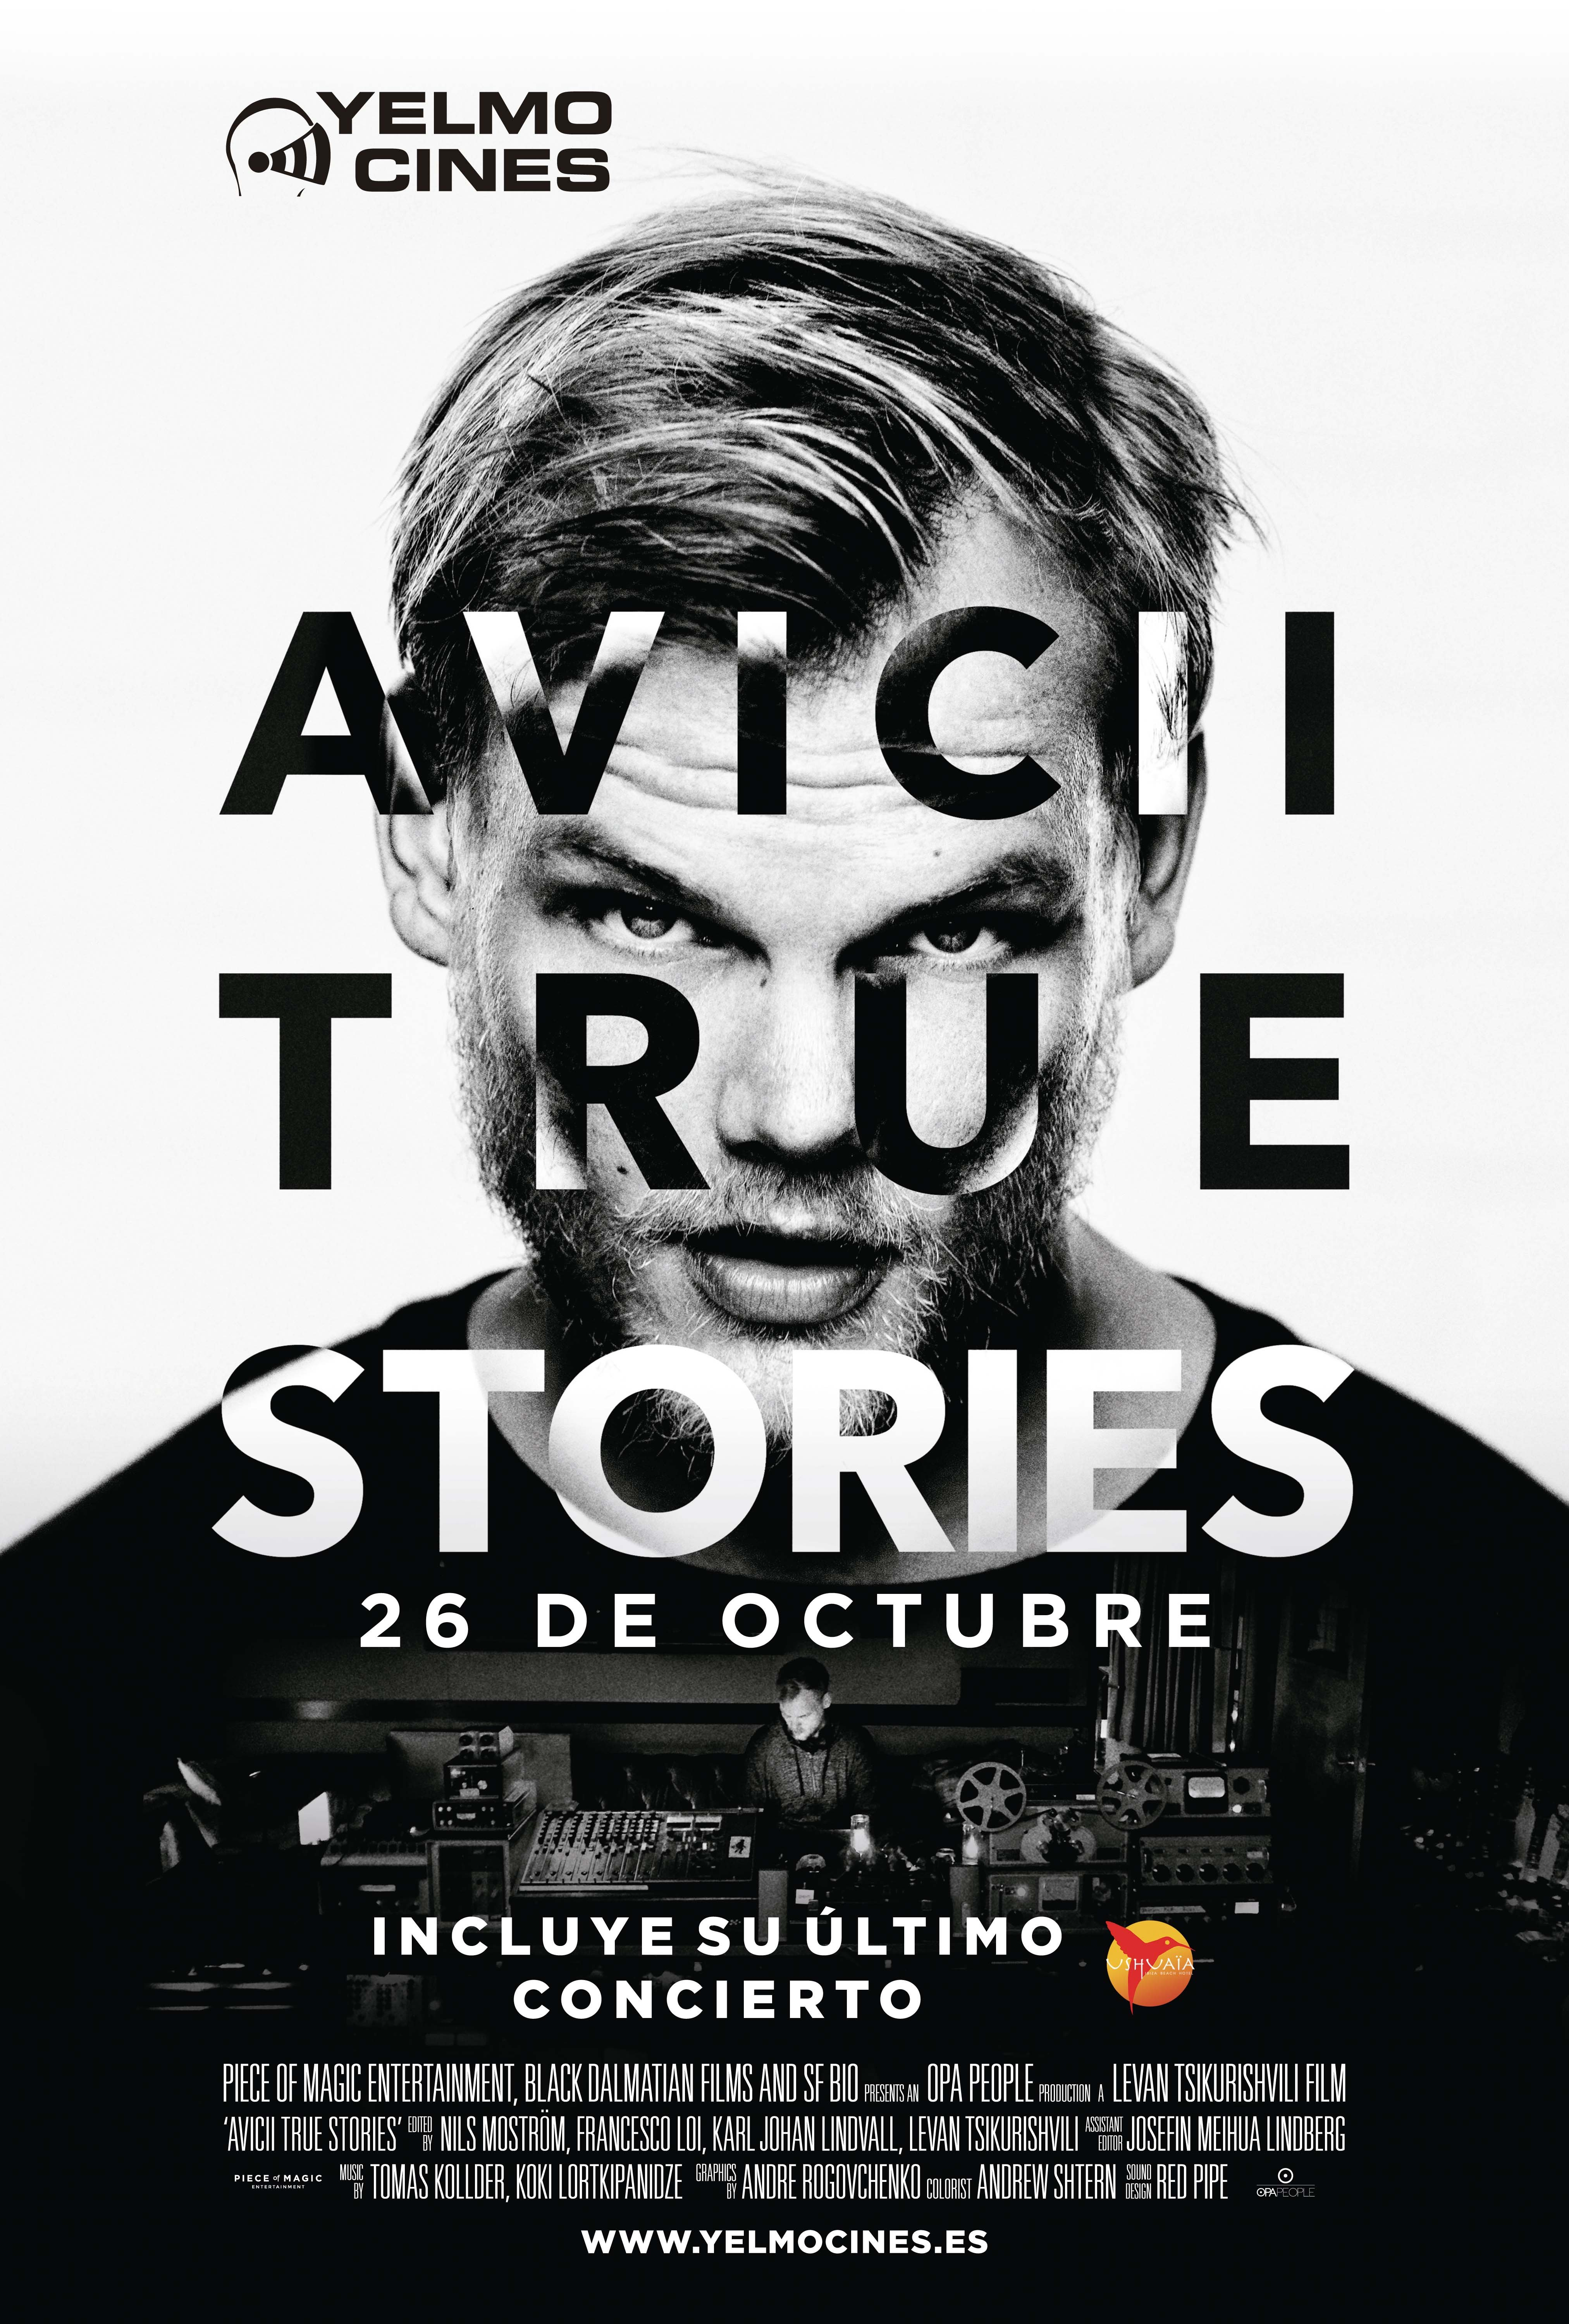 Este 26 de octubre, Avicii -y su documental 'True Stories'- en exclusiva en Yelmo Cines 7a4ebb6b 2f22 4bd0 aa9a 53a162b78998